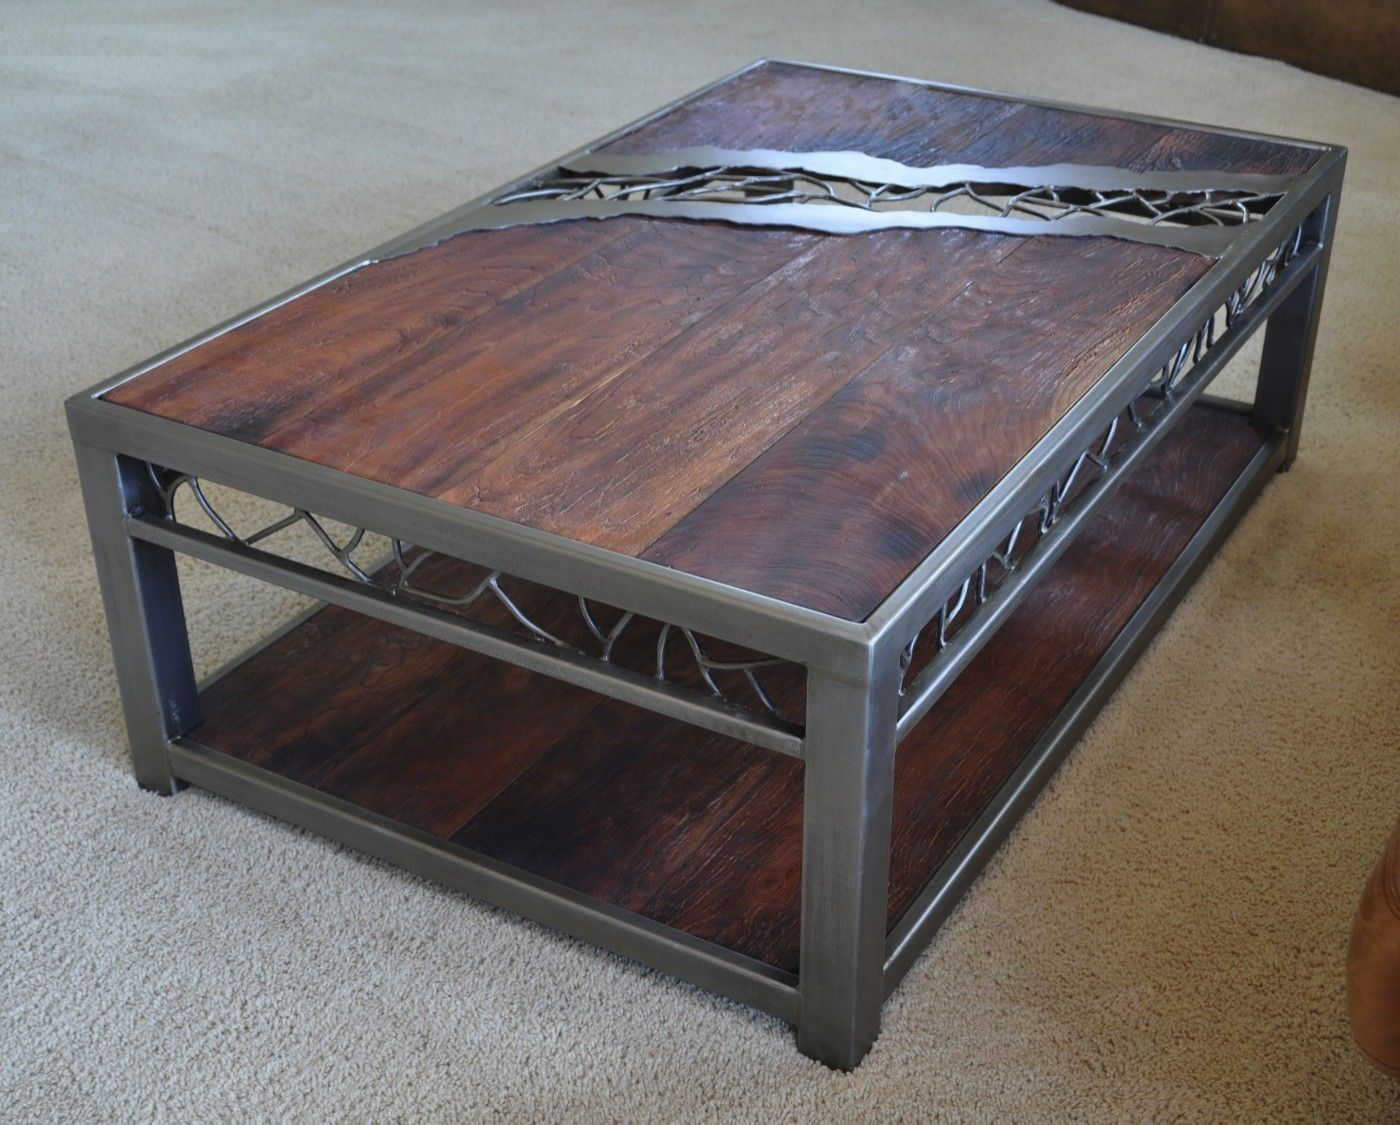 Nollette Metal Works Projects Furniture Coffee Table Wood Distressed Wood Coffee Table Metal Coffee Table [ 1125 x 1400 Pixel ]